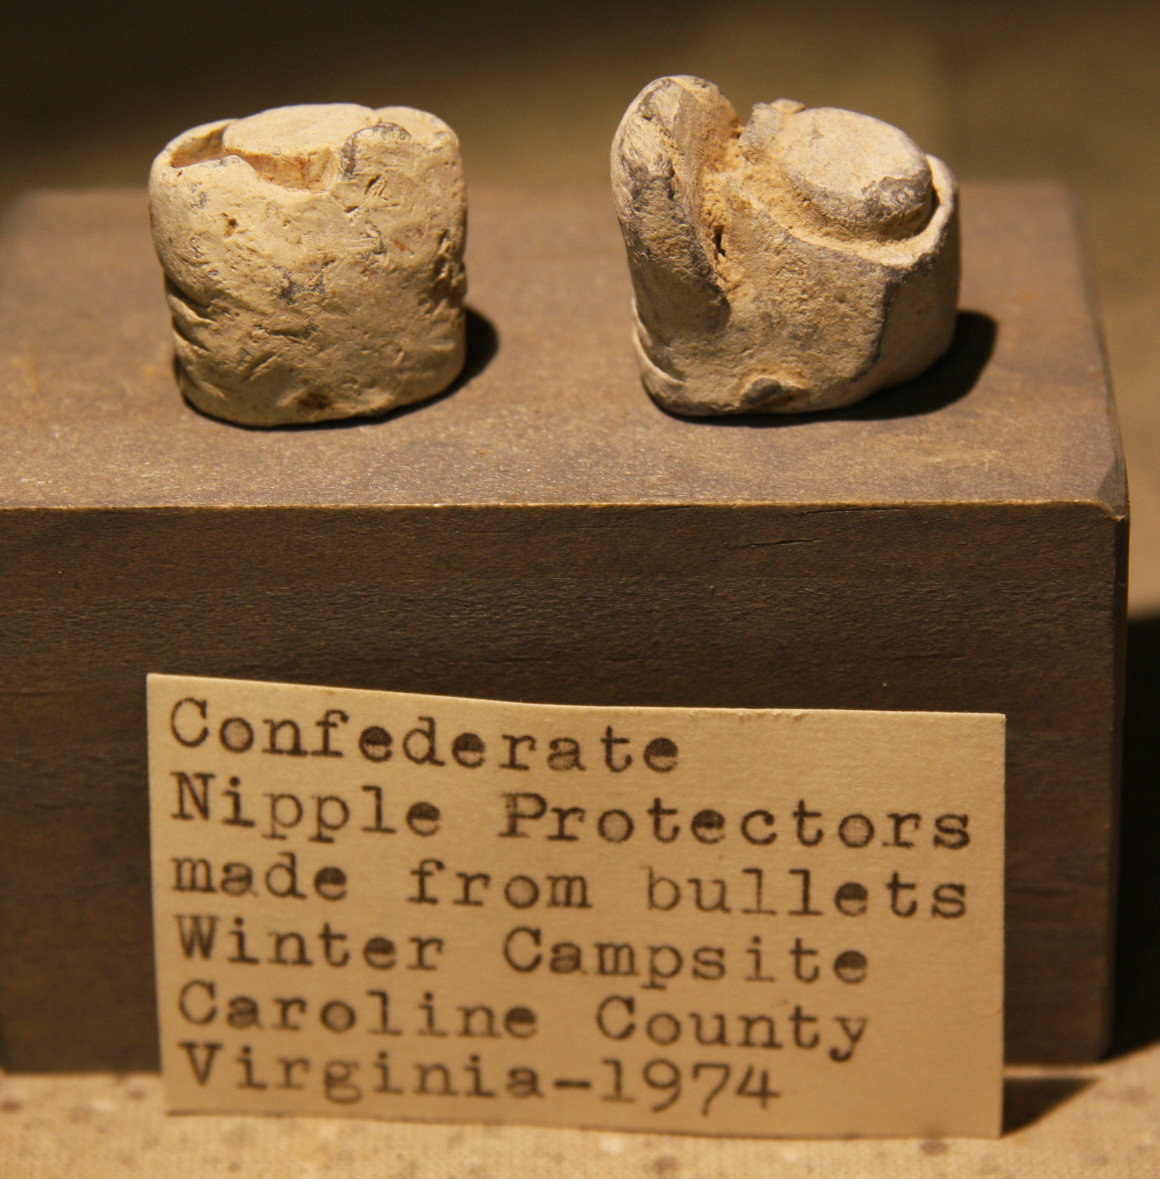 JUST ADDED ON 6/25 - CONFEDERATE WINTER CAMP CAROLINE COUNTY, VA - Two Soldier Carved Musket Nipple Protectors with Original Collection Label - found in 1974